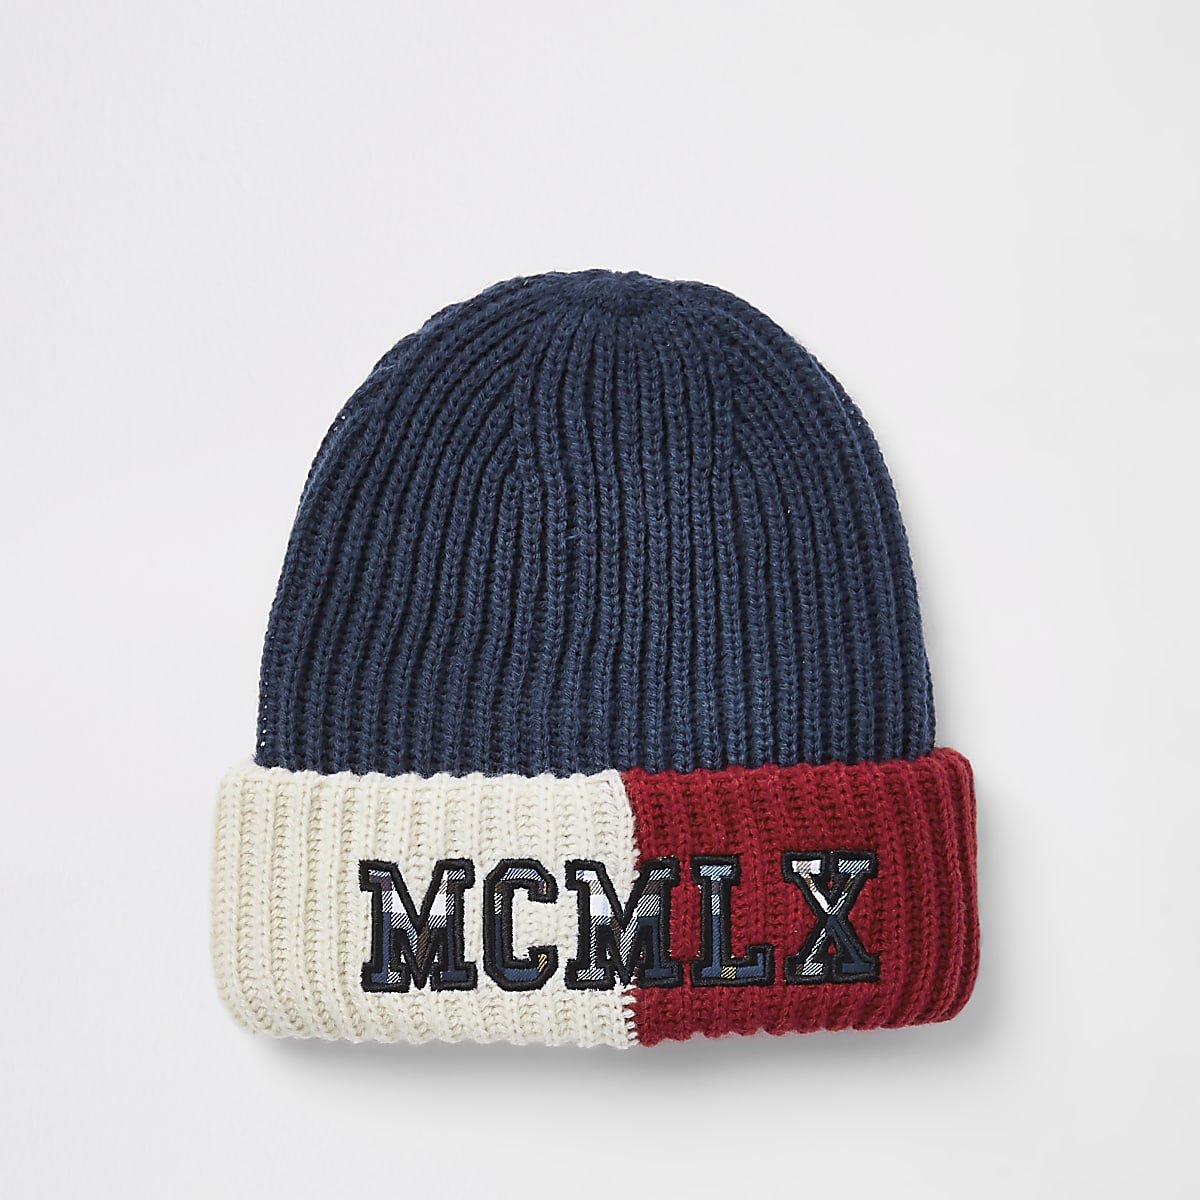 54fcf1b7ad6 Navy color block embroidered beanie hat Navy color block embroidered beanie  hat ...